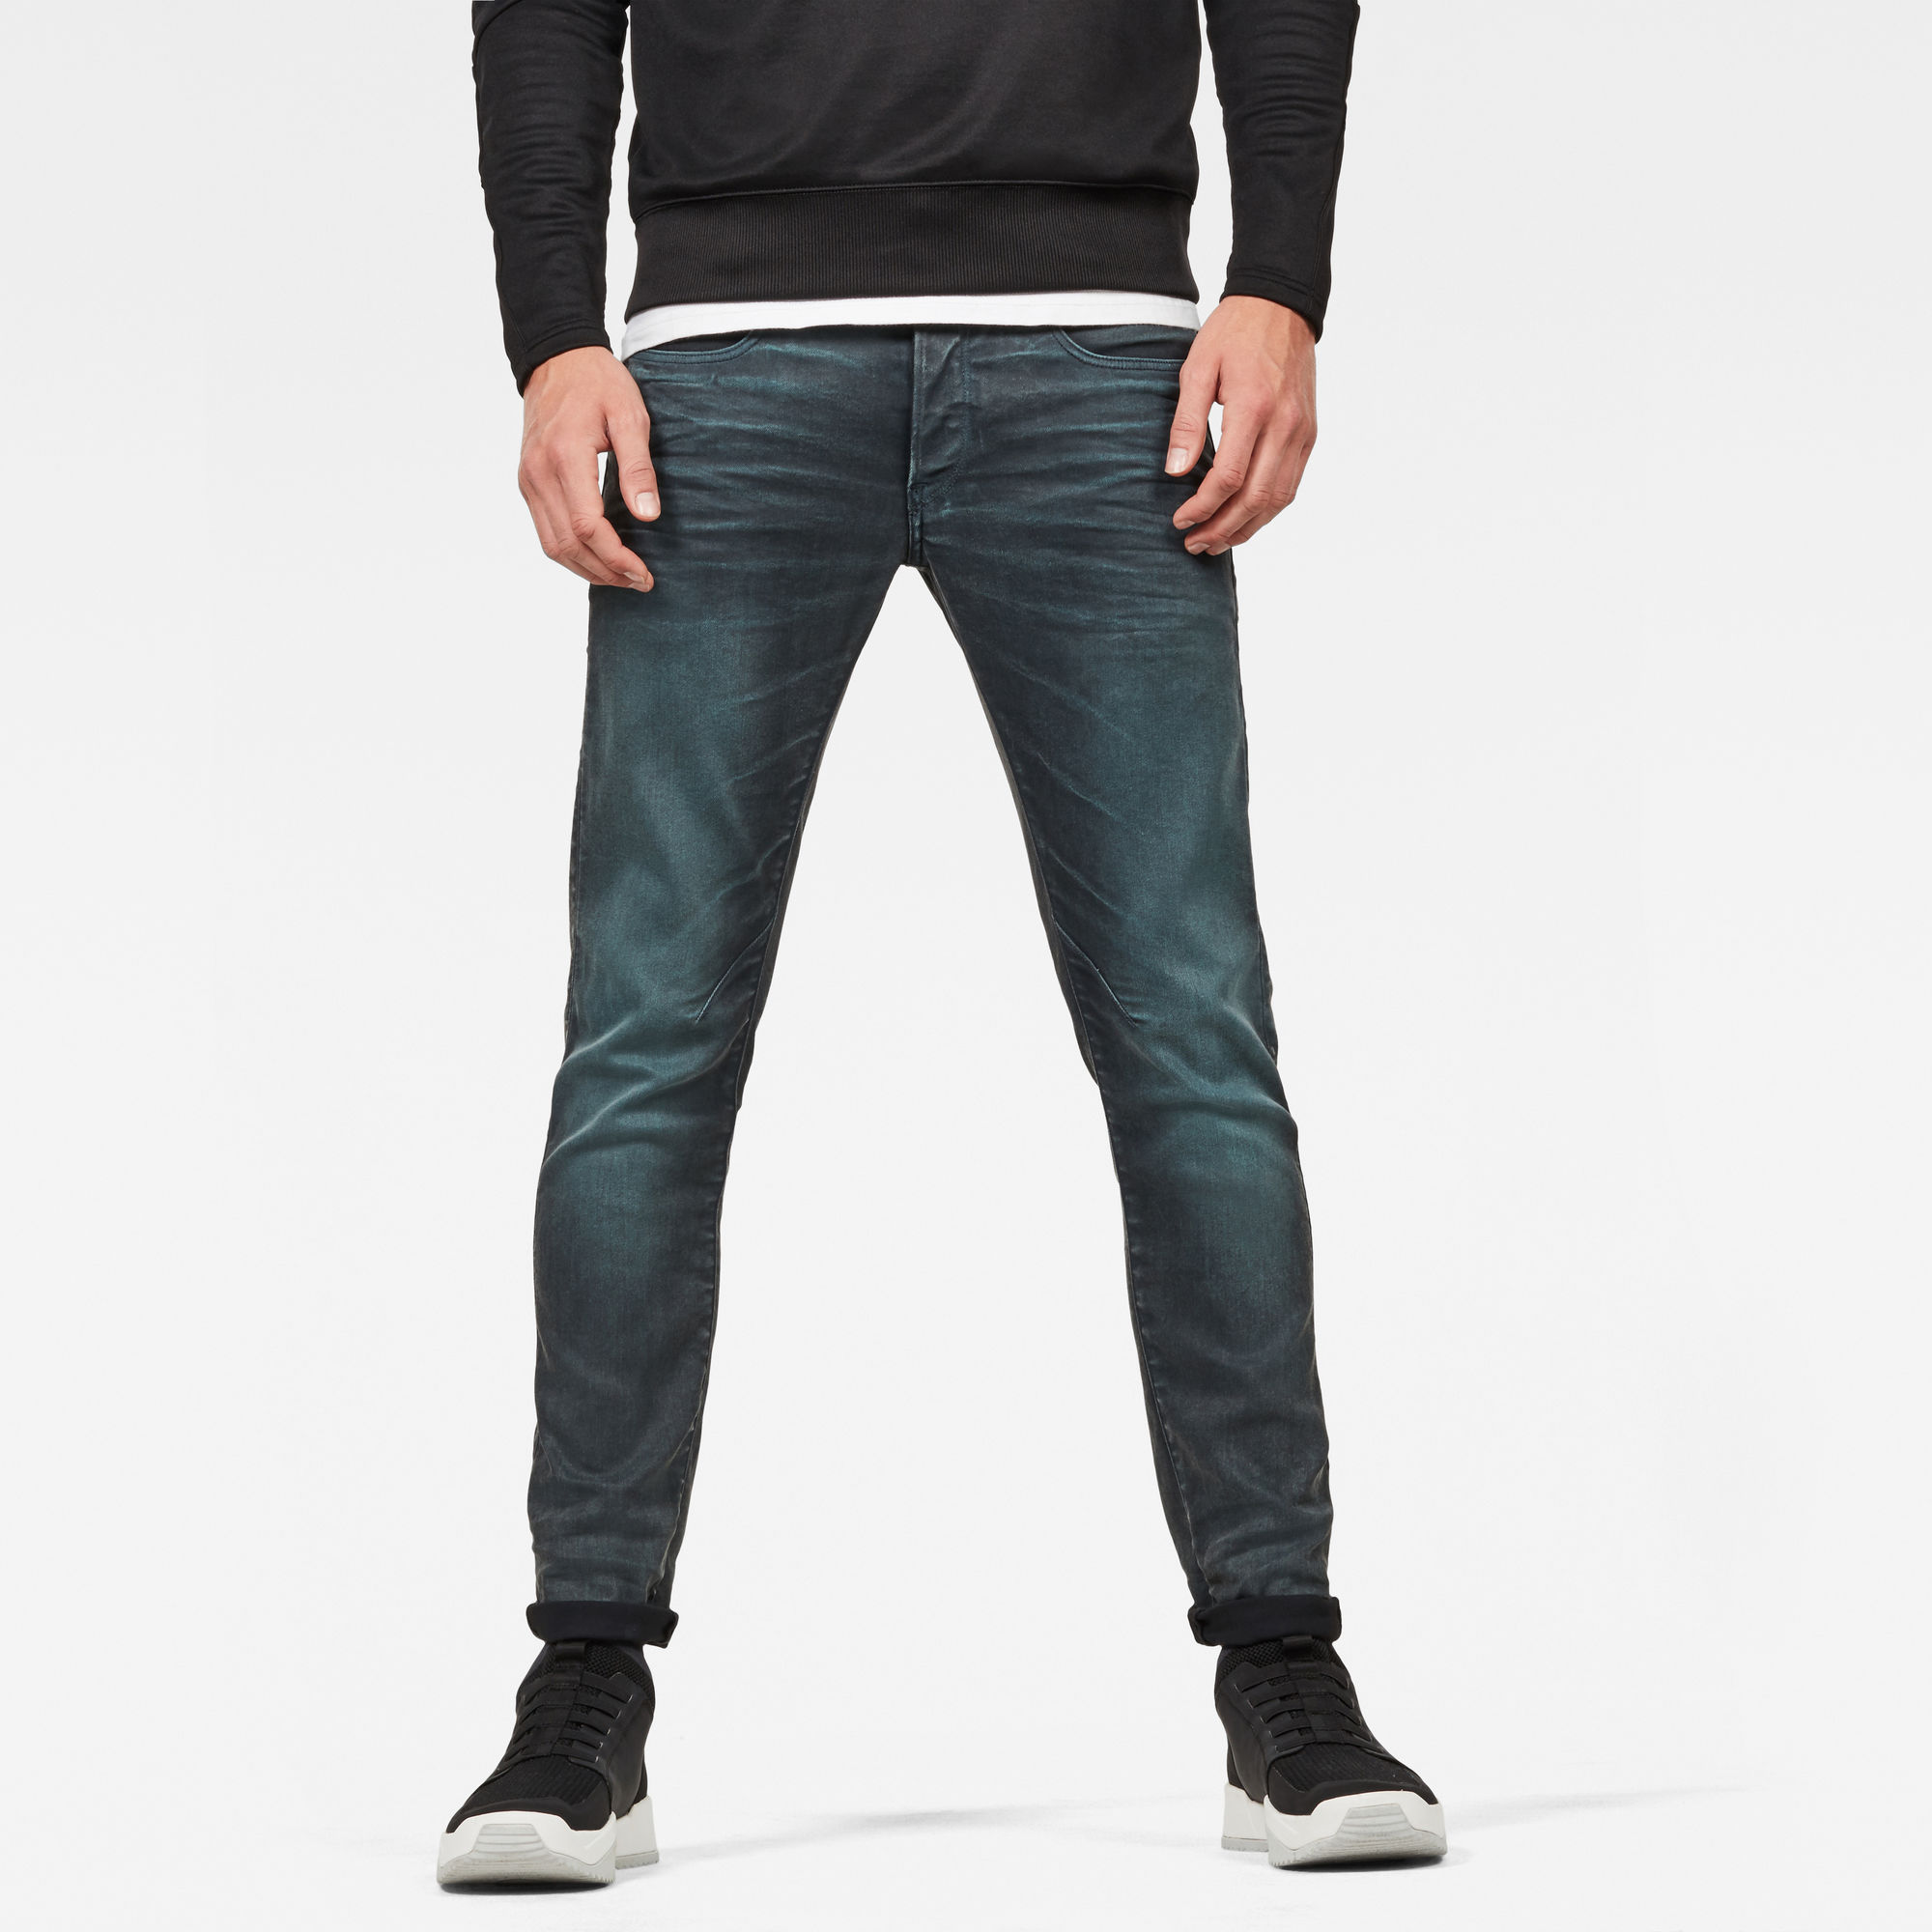 Image of G Star Raw D-Staq 5-Pocket Slim Colored Jeans